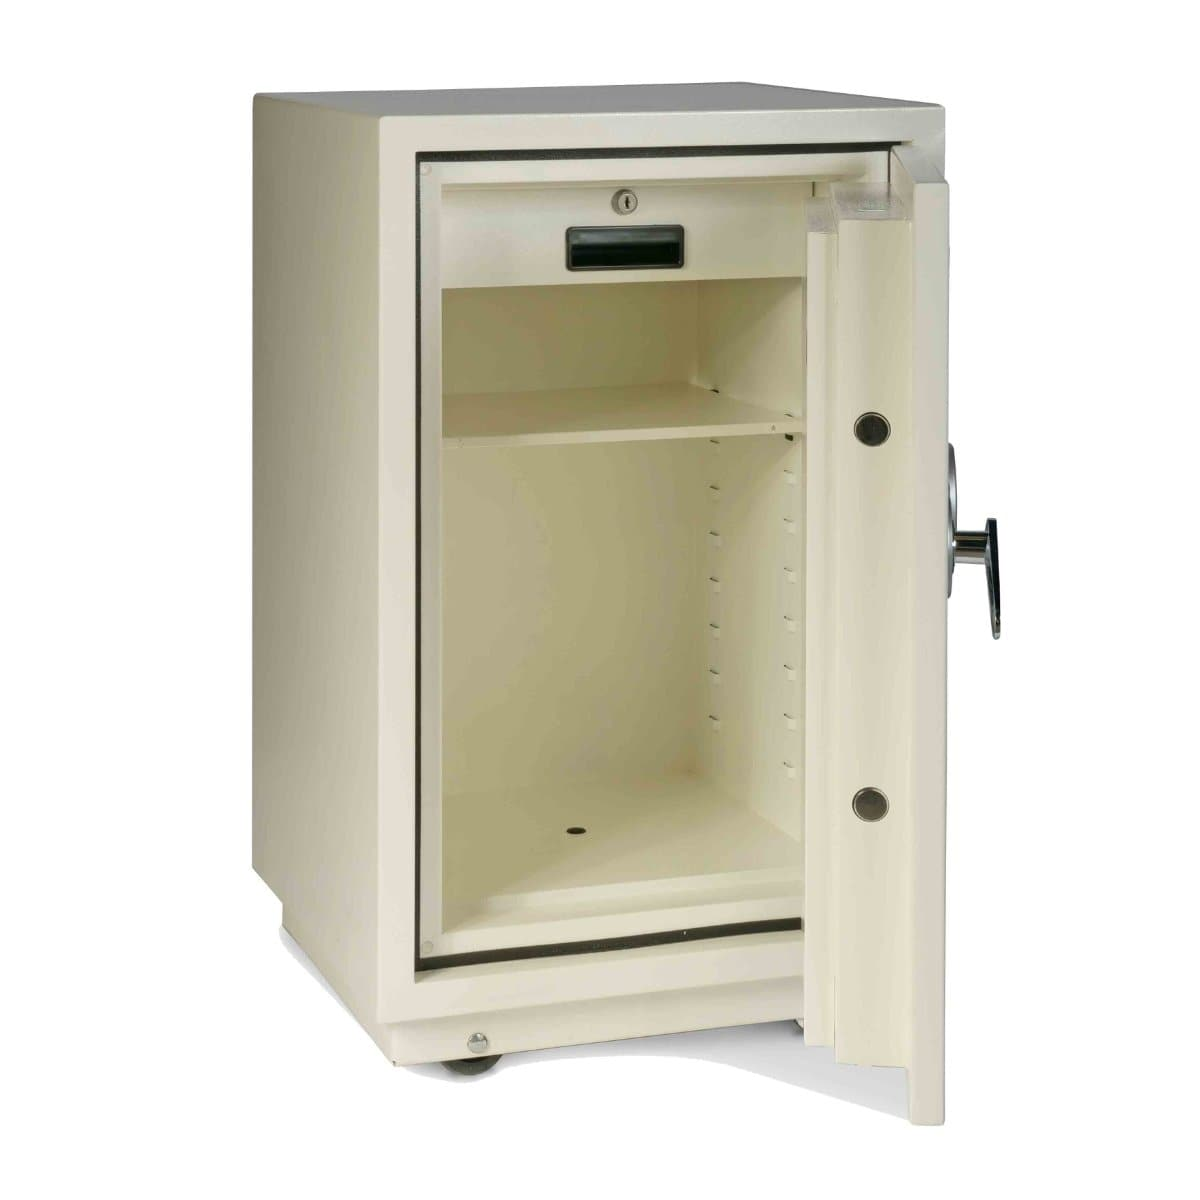 Valberg FRS-75 KL Fire Resistant Safe, 2 Key Locks, White